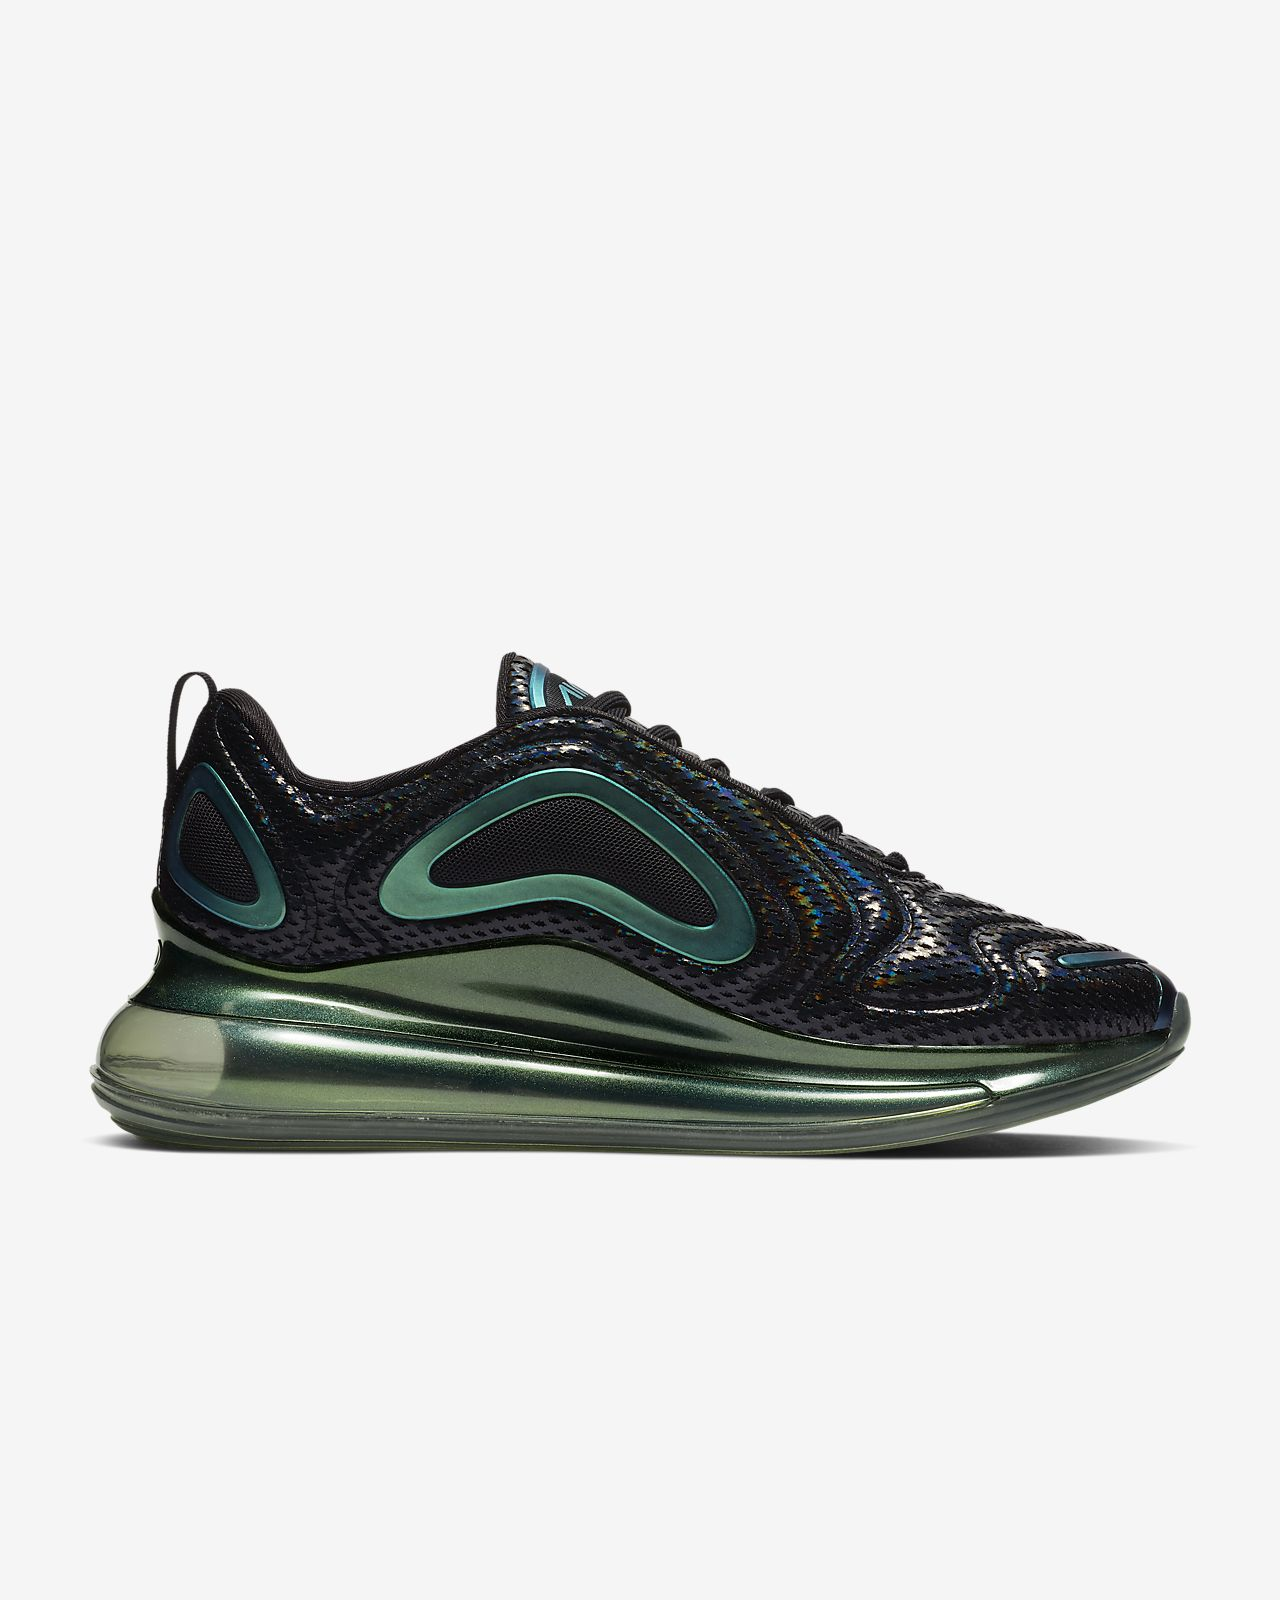 low priced 780d5 d5b0c ... Sko Nike Air Max 720 för män